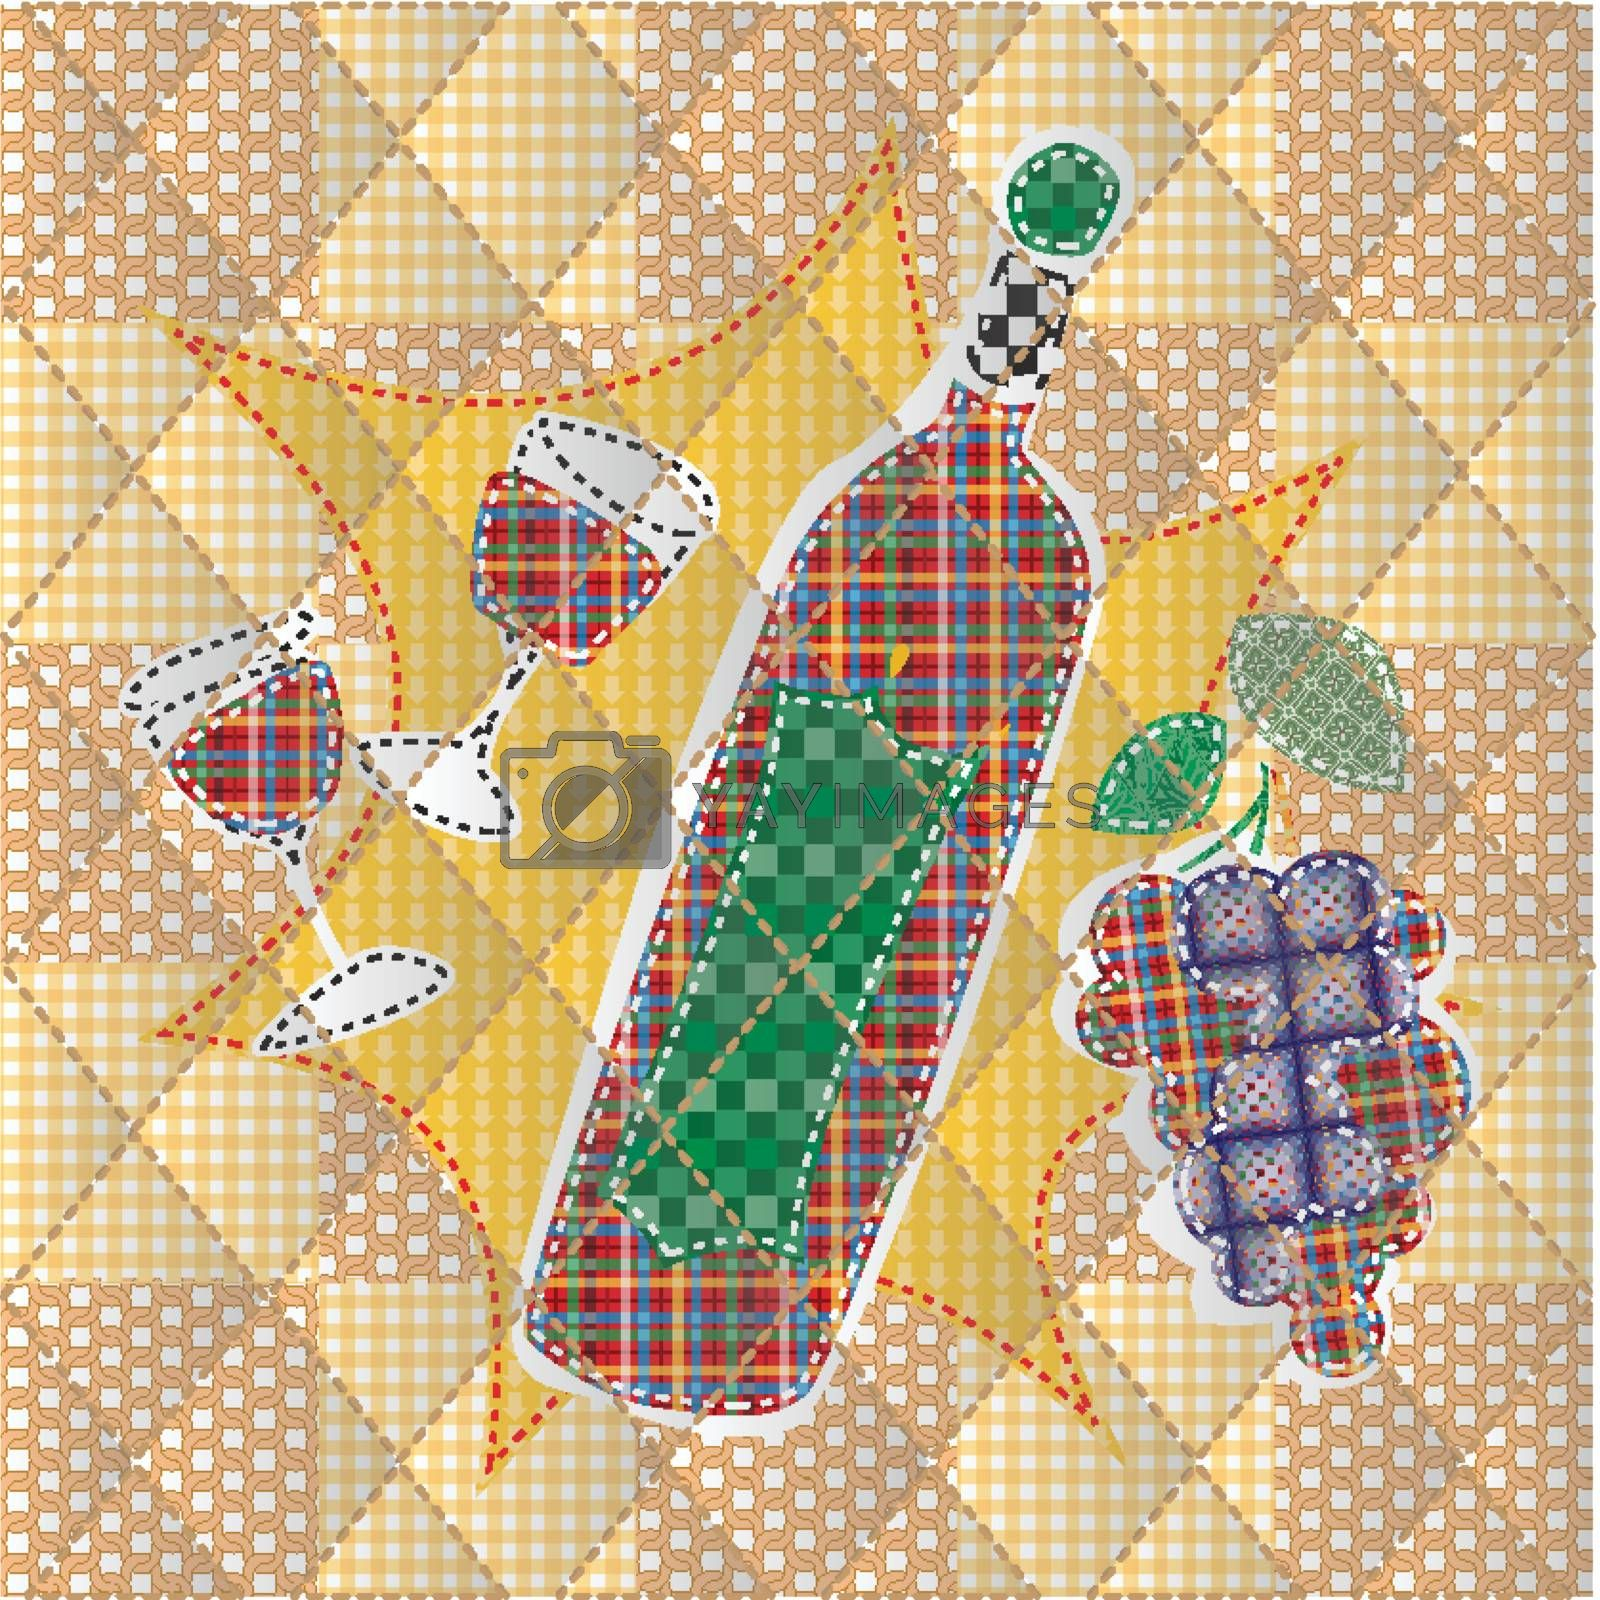 Illustrations patchwork of bottle of wine and a glass of wine